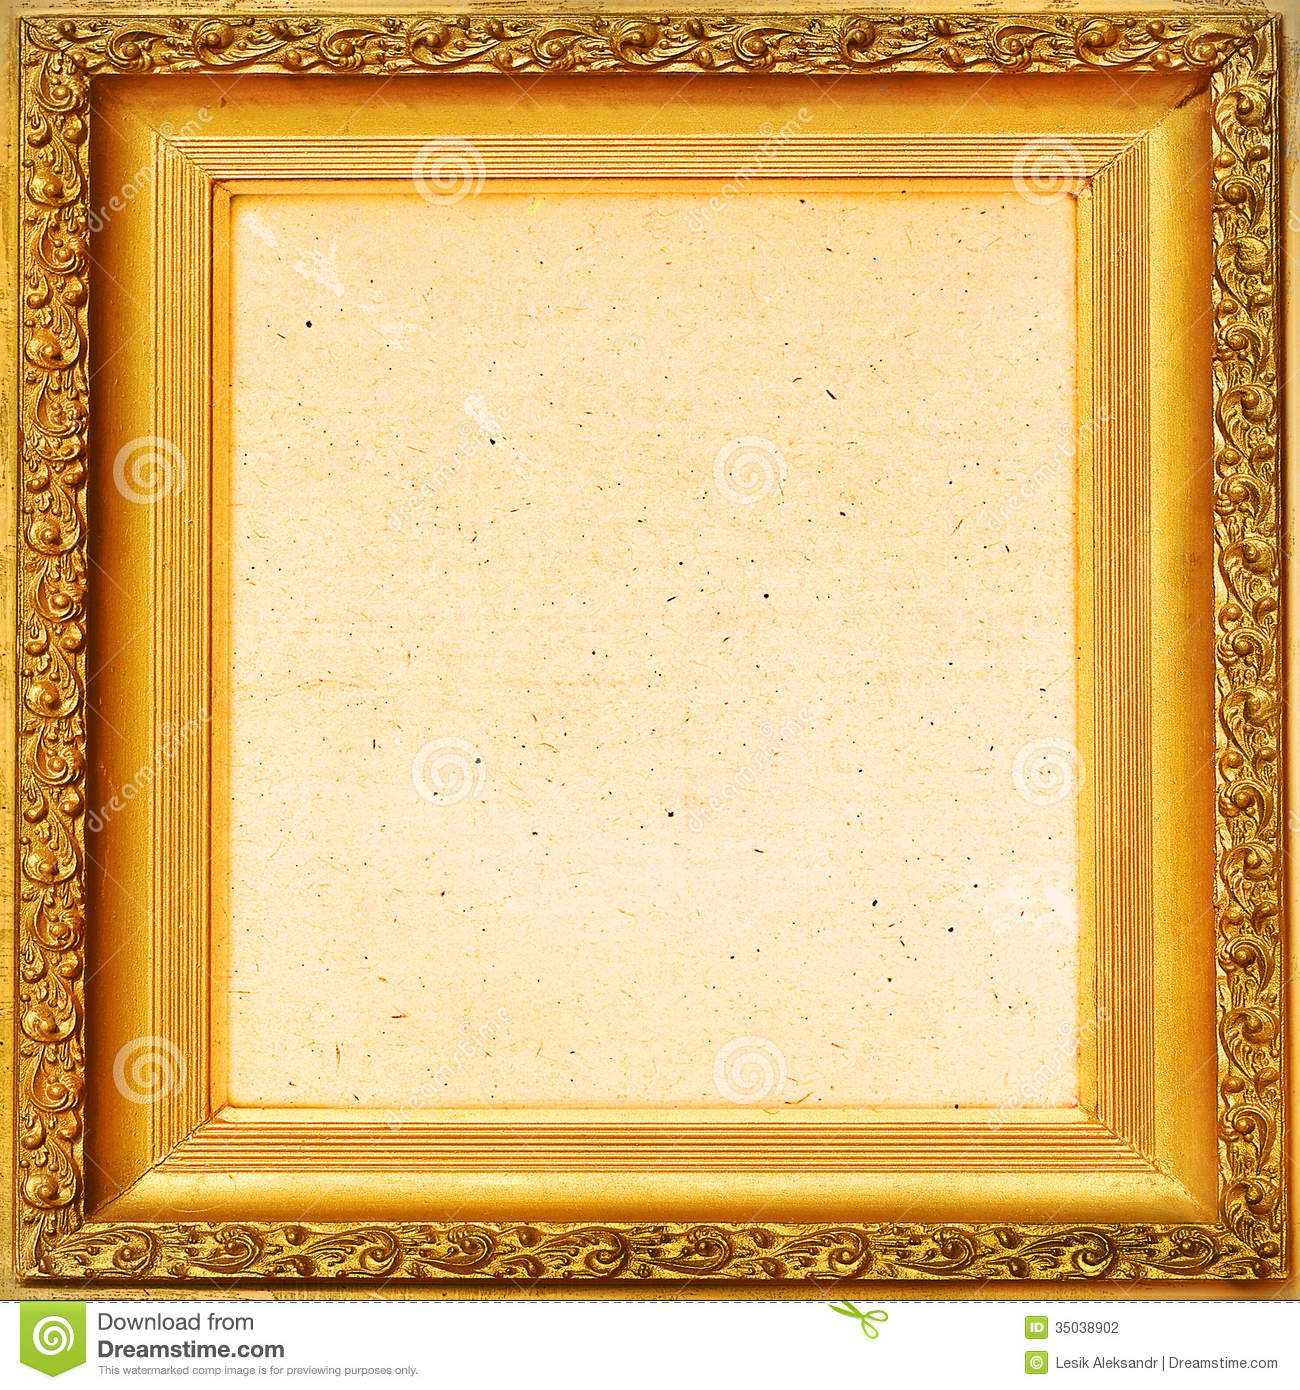 Vintage Background Old Frame, Gold Leaf Stock Photo - Image of ...